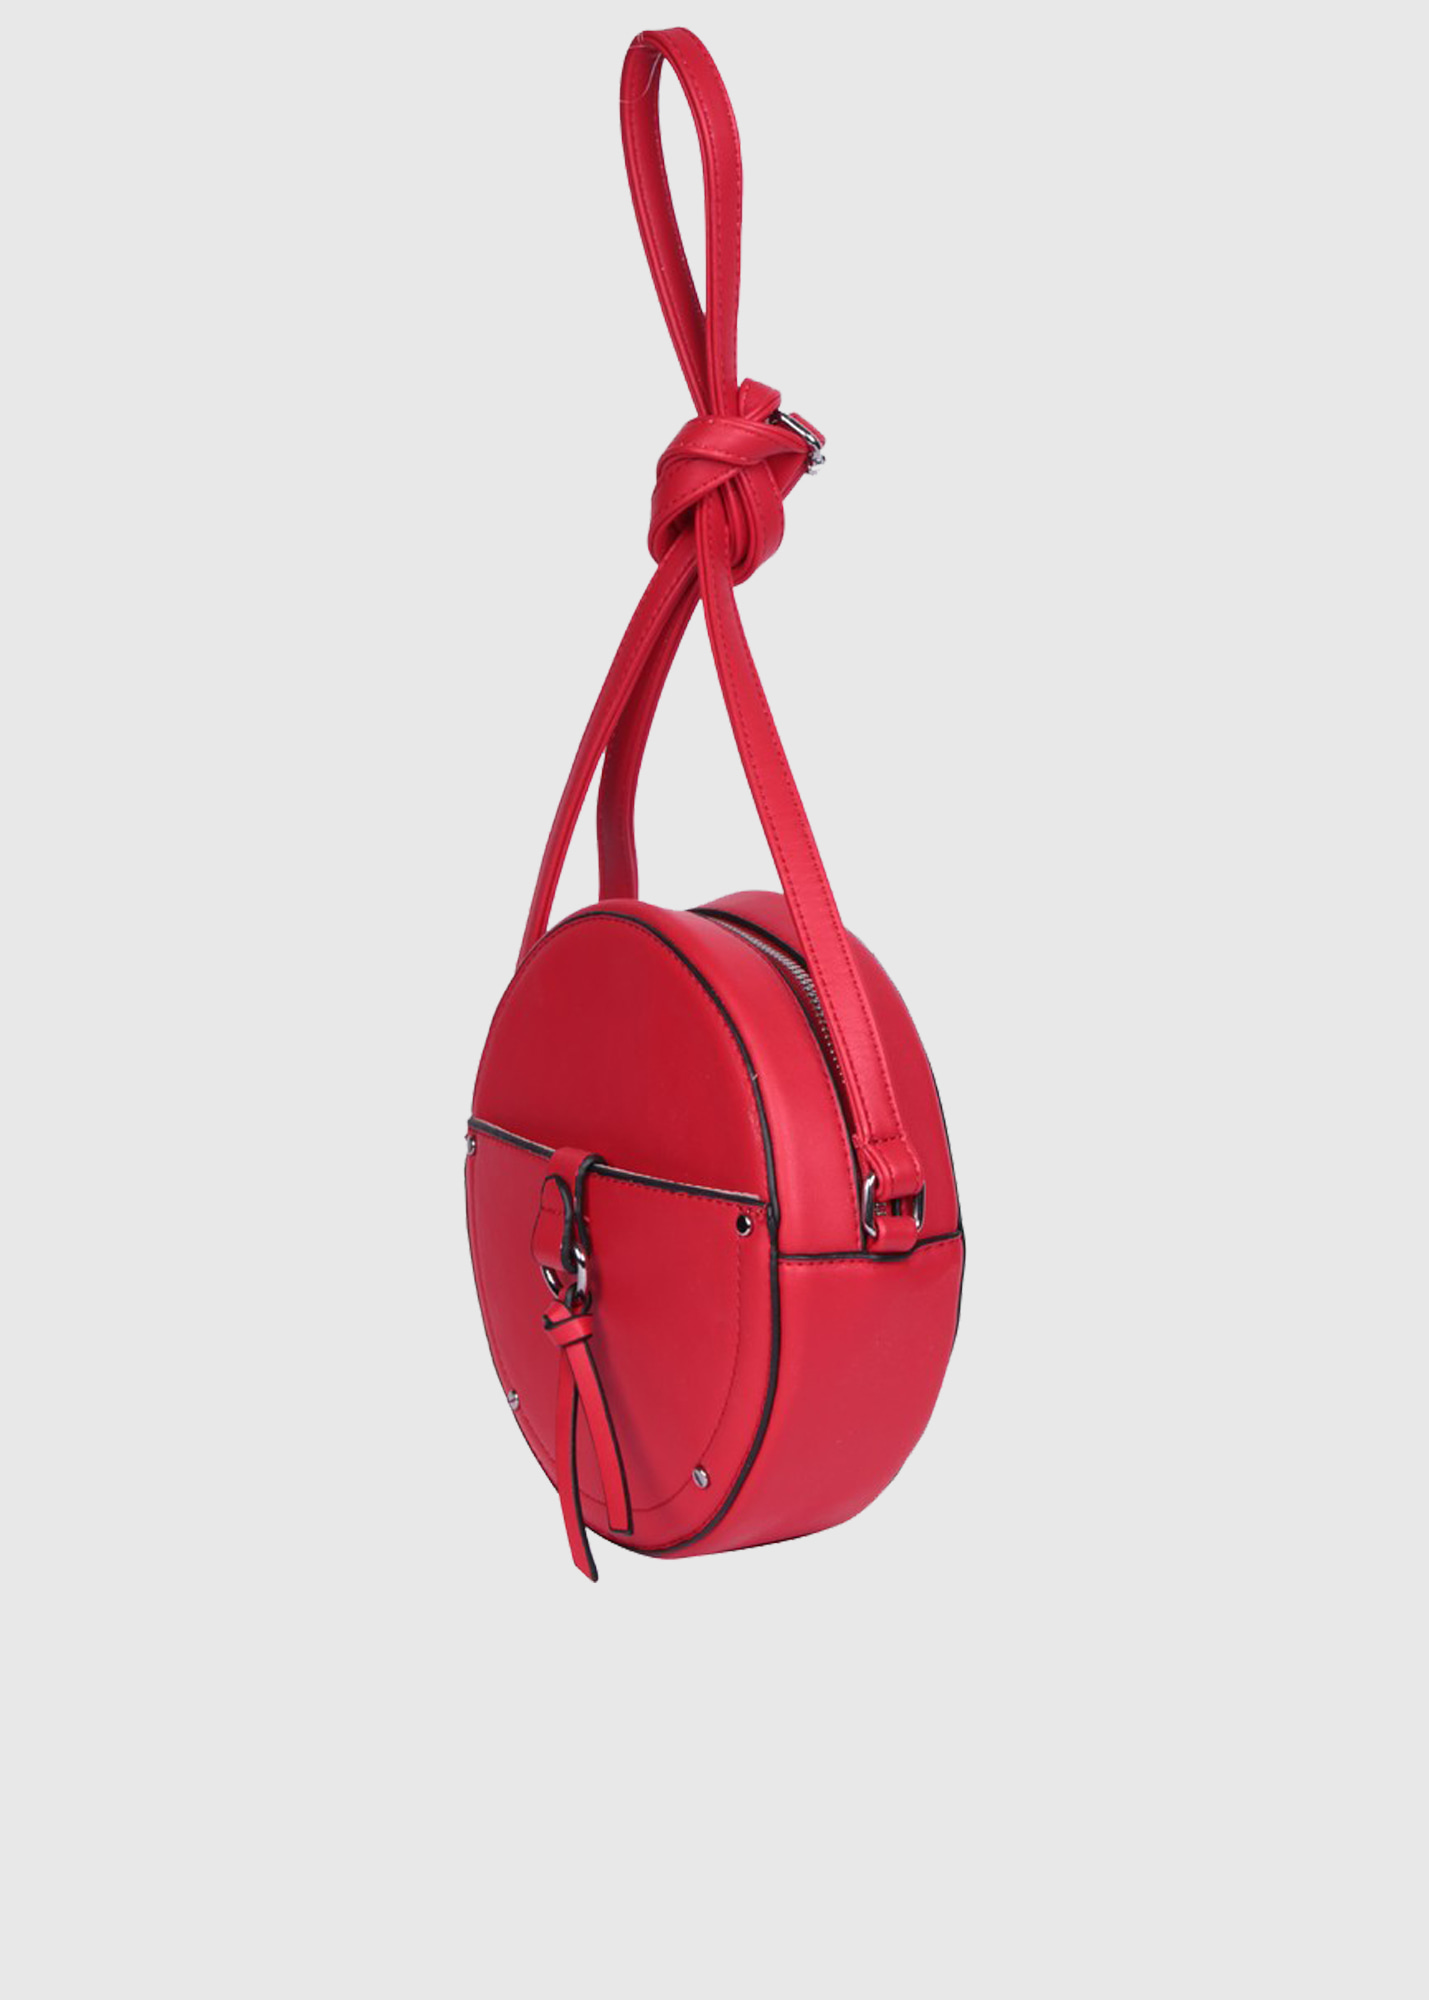 Photo №2 Carana women's round red bag